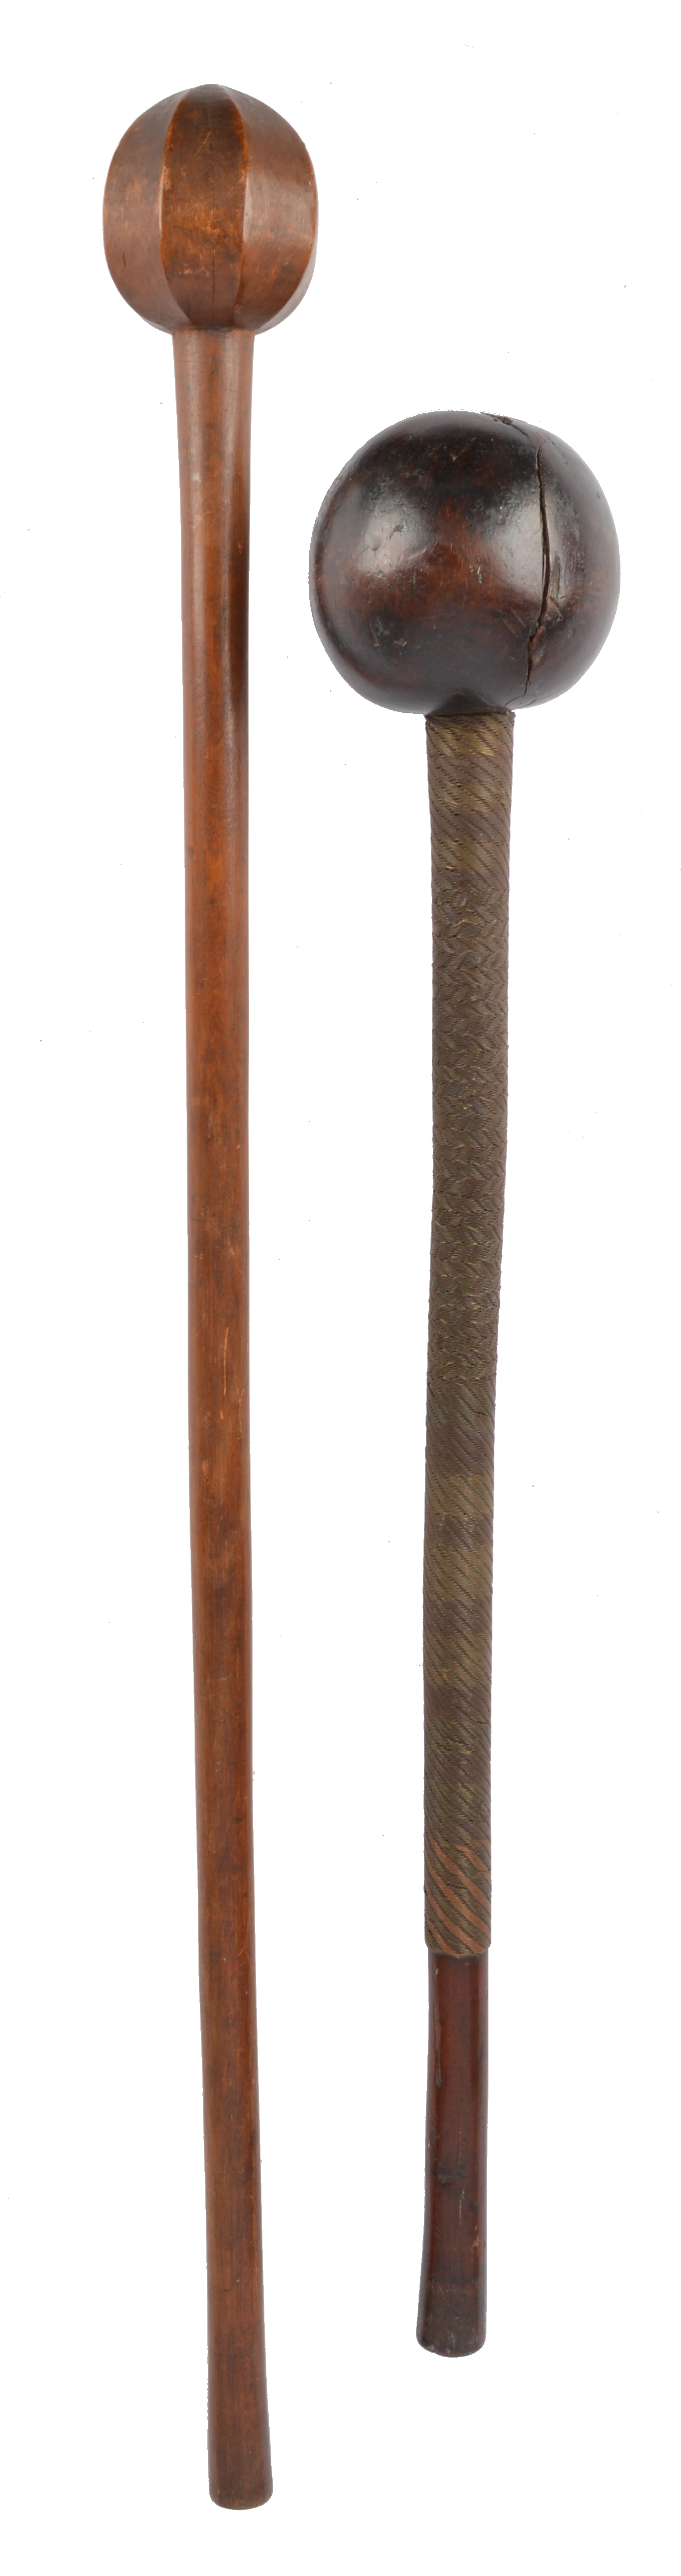 An African throwing club (knobkerrie)